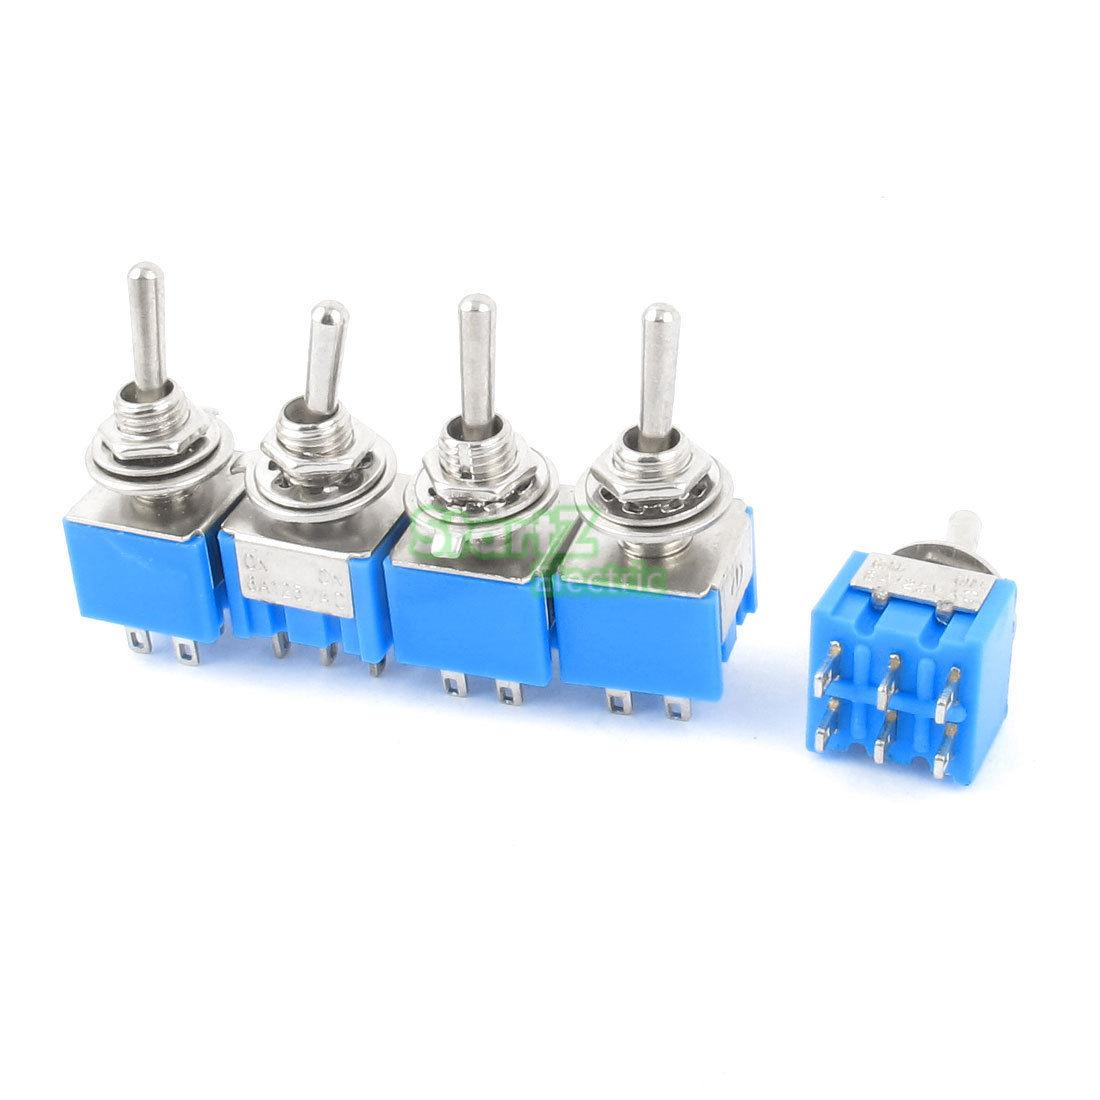 Home Appliances Good Ac125v 6a Dpdt On-on 2 Positions 6 Pin Latching Miniature Toggle Switch 20pcs Air Conditioning Appliance Parts